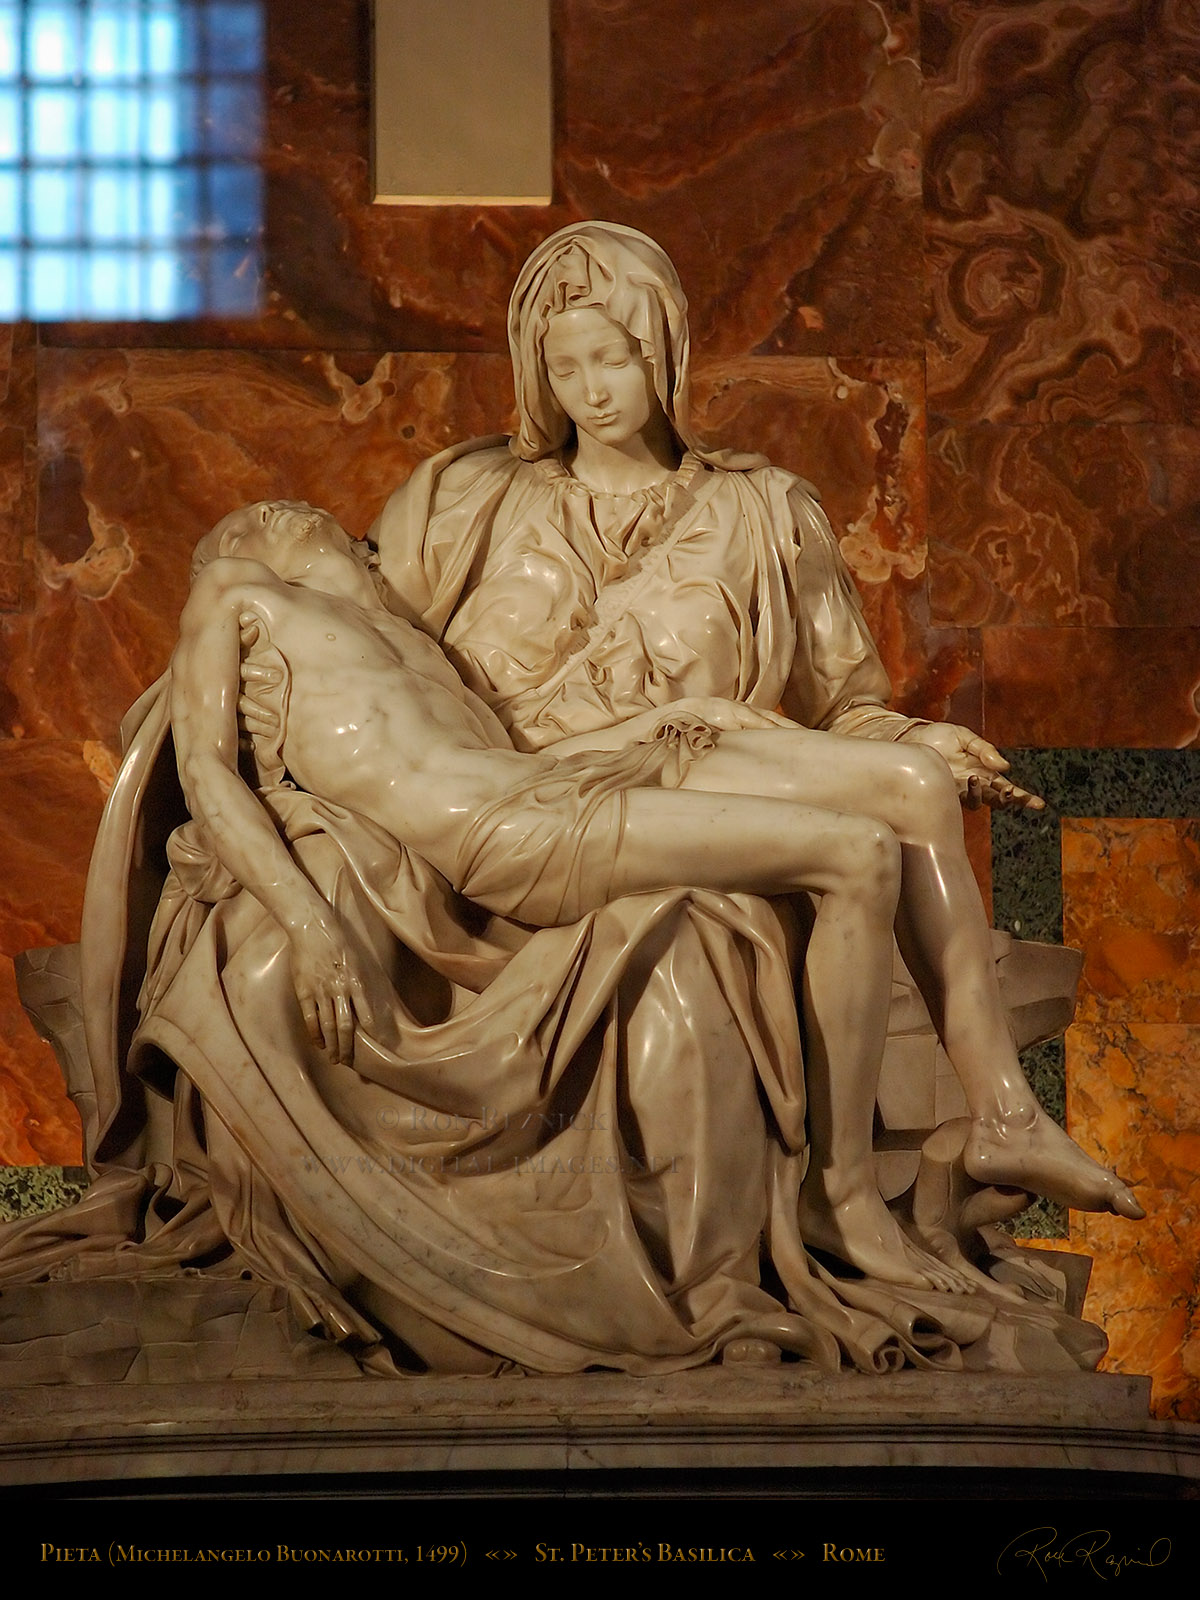 comparing the kiss and pieta scultpures Michelangelo's pieta and david - michelangelo created two of his masterpieces, the pieta in st peter's basilica and david, while in his twenties learn more about these works of art.